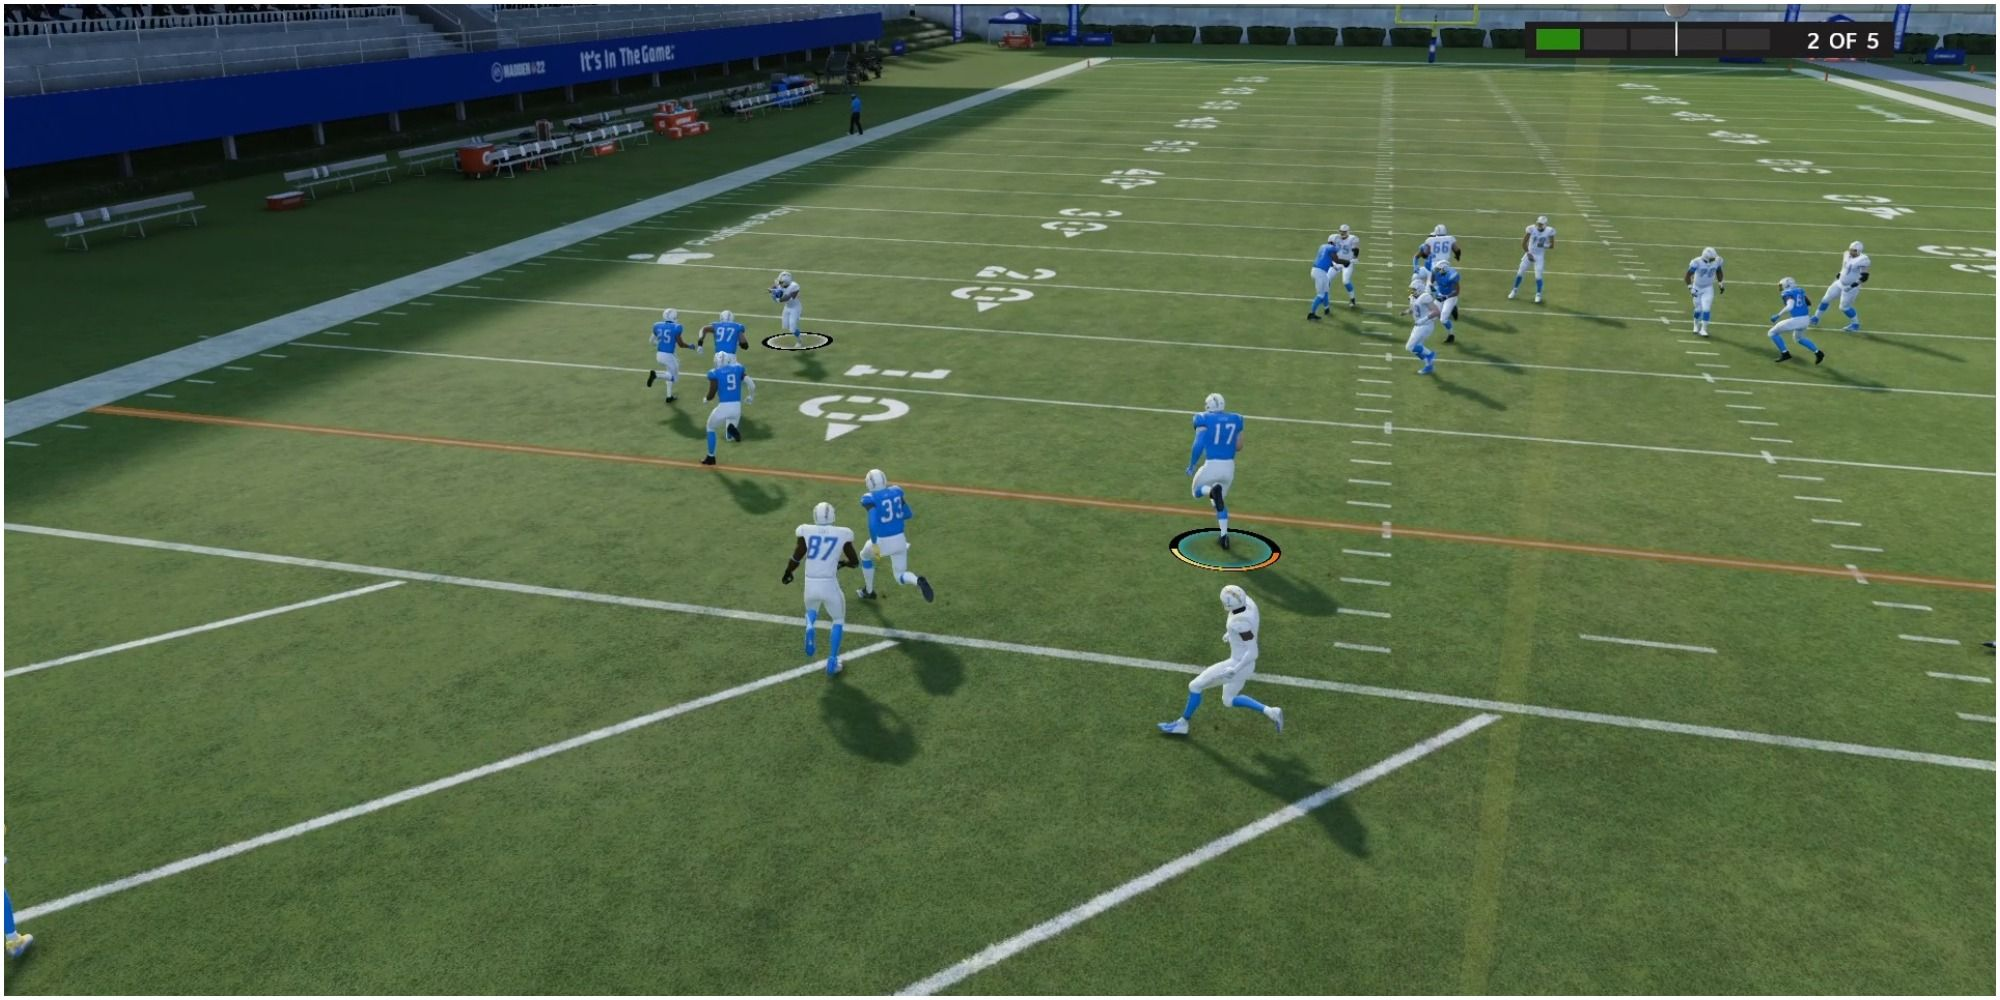 10 Mistakes Everyone Makes While Playing Madden NFL 22